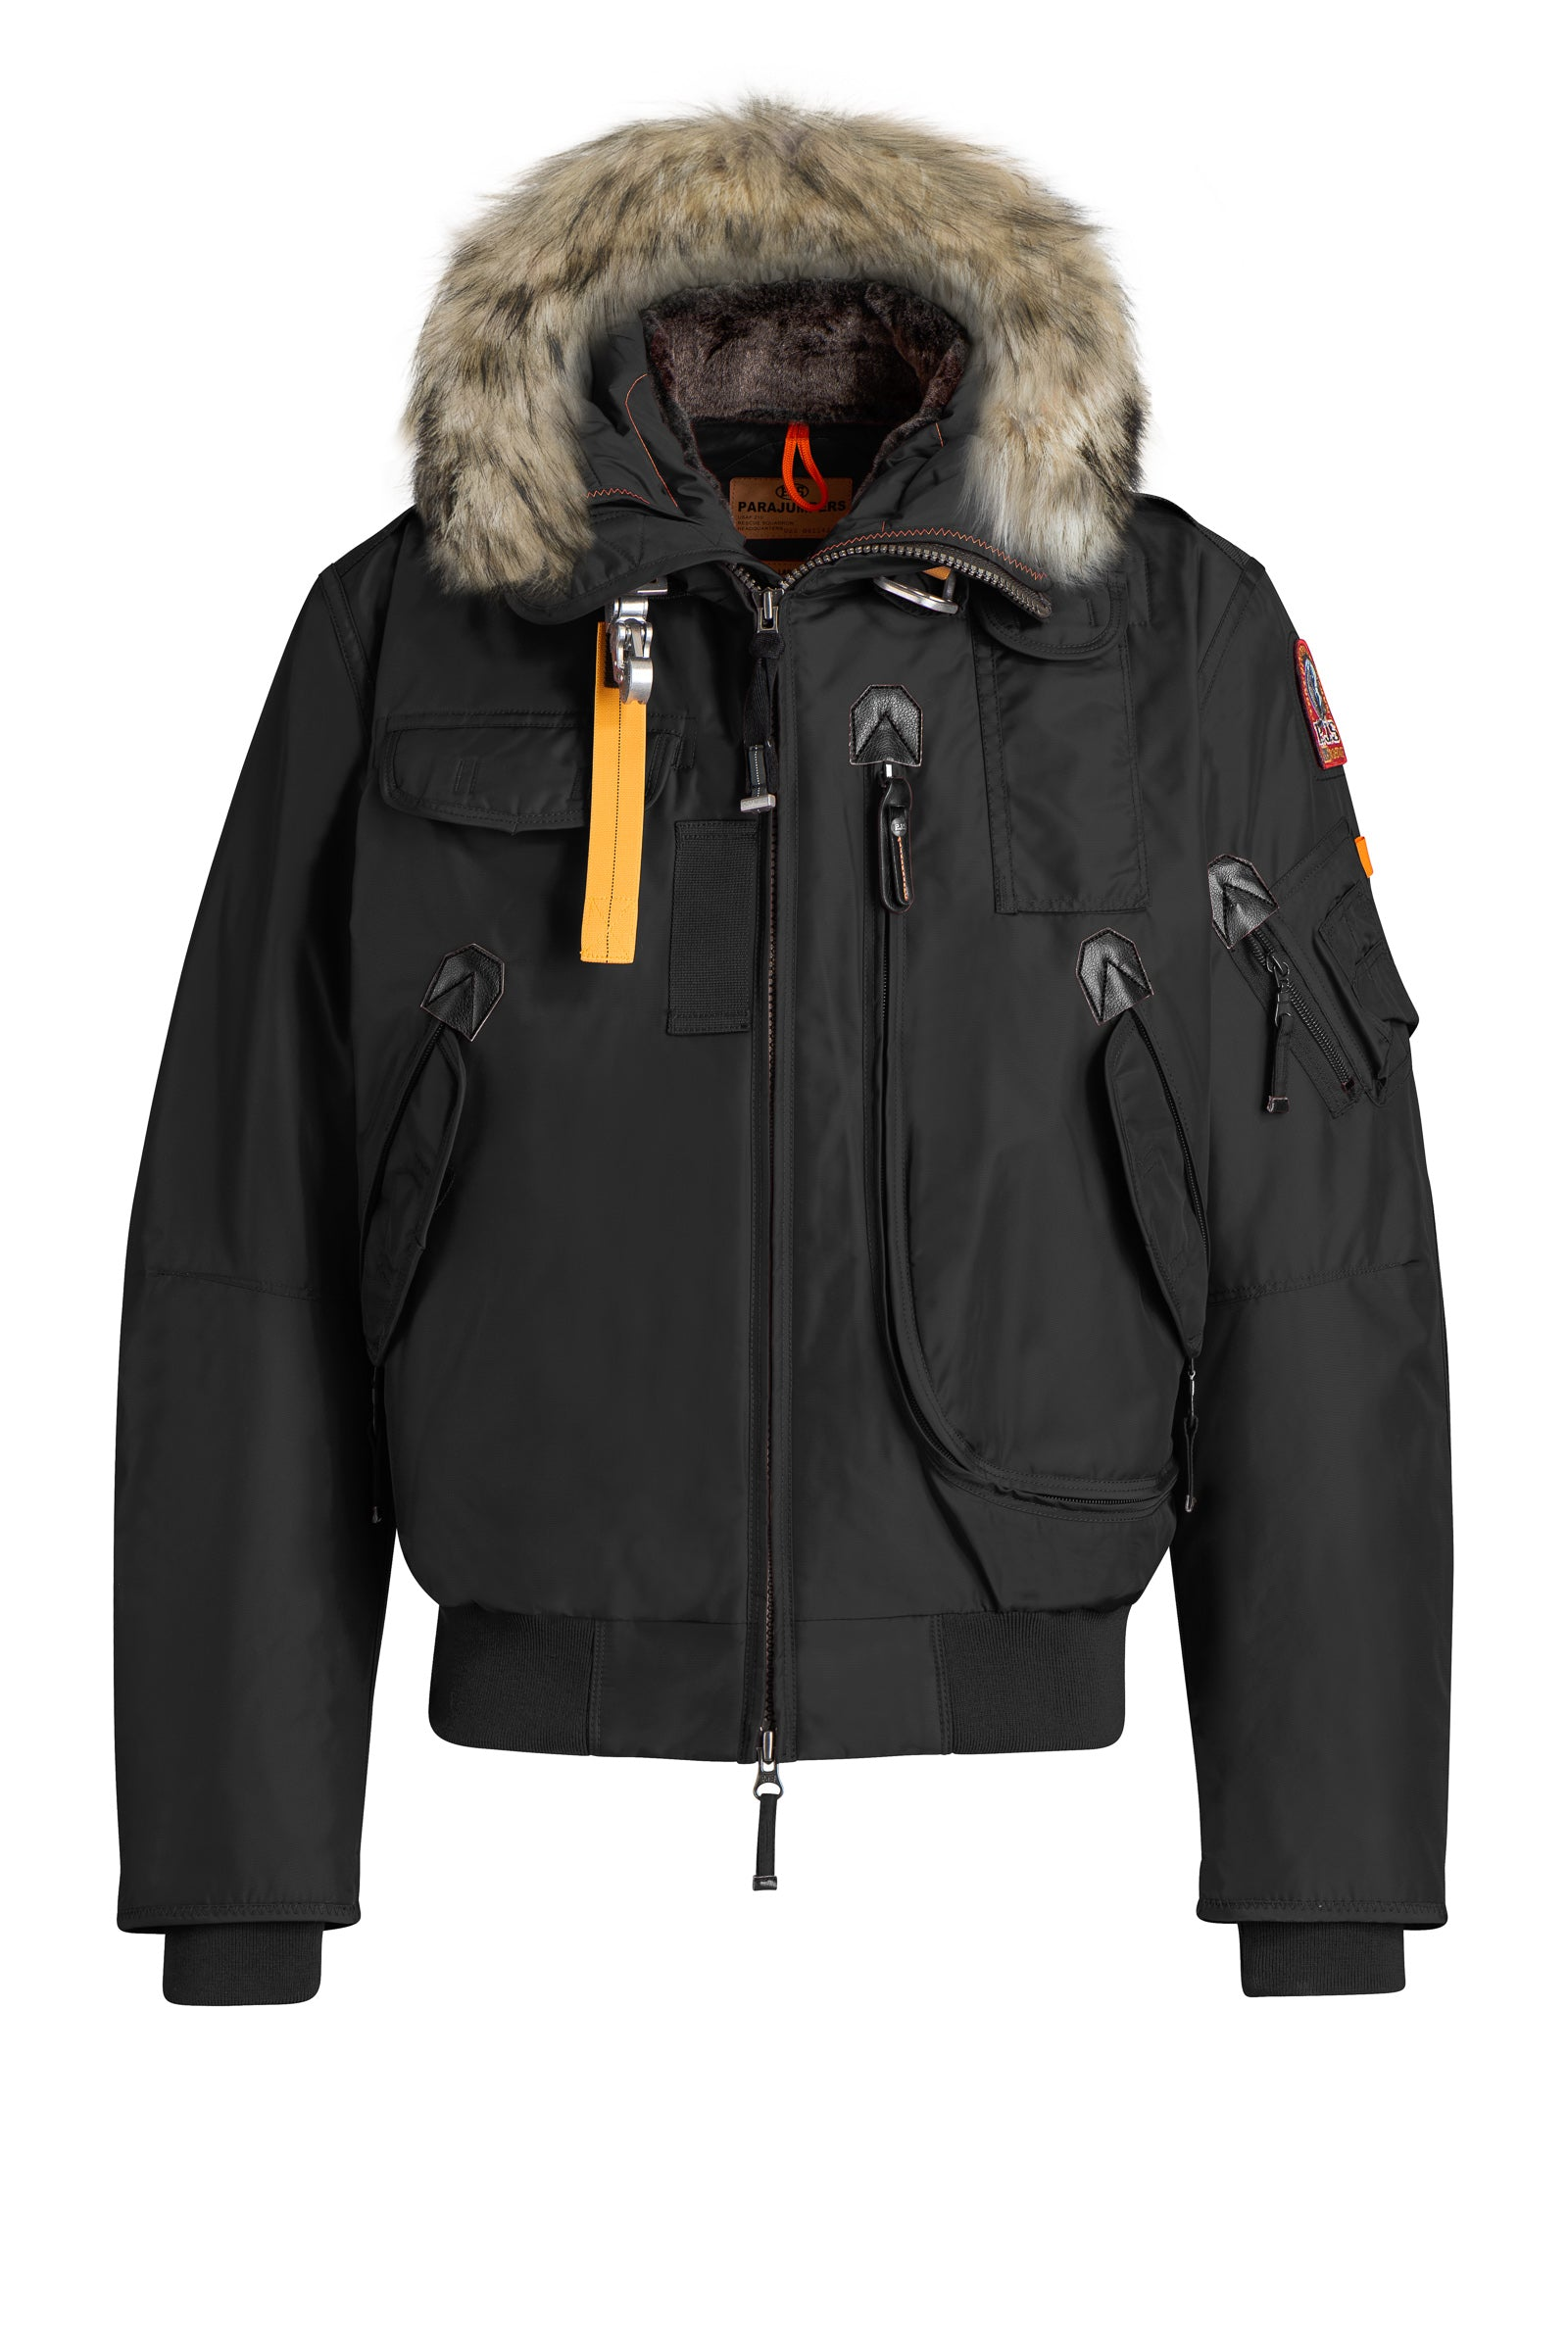 ID6195-Parajumpers Gobi Black Coat